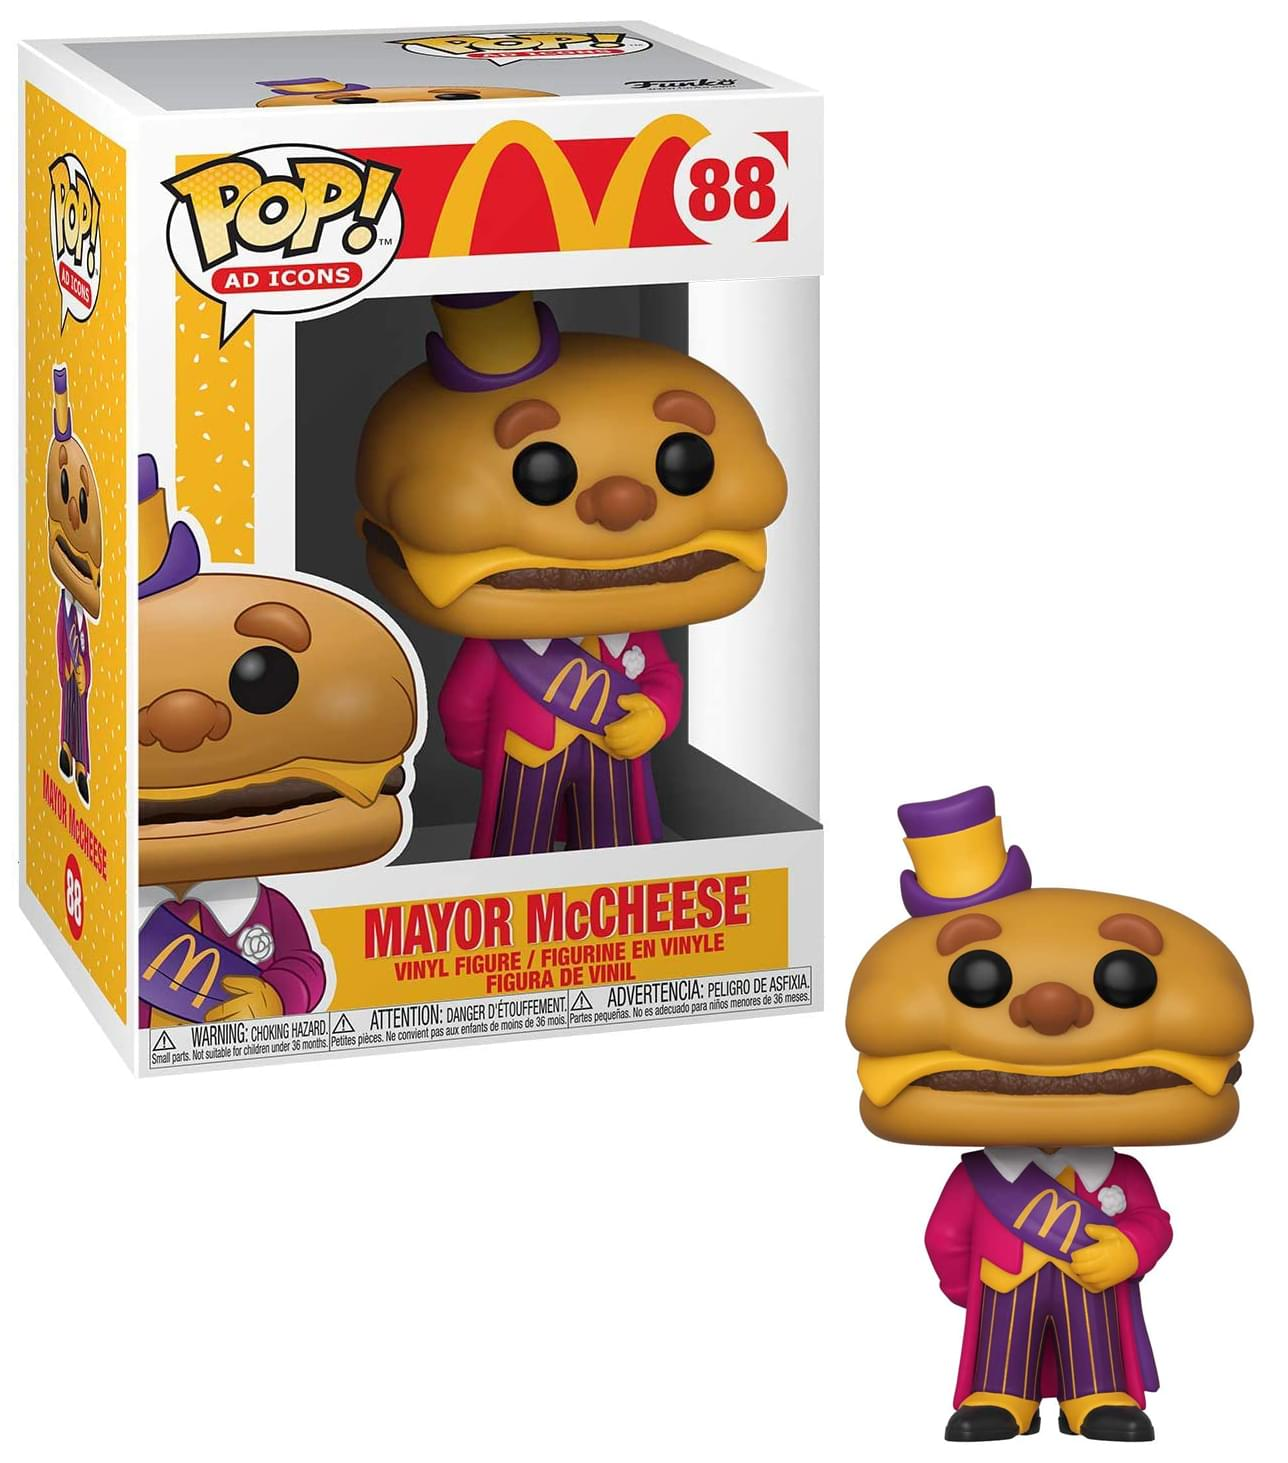 Free Shipping Mcdonald S Pop Figure Mayor Mccheese Toynk Toys A mcdonalds restaurant character that has been retired for a while now. funko